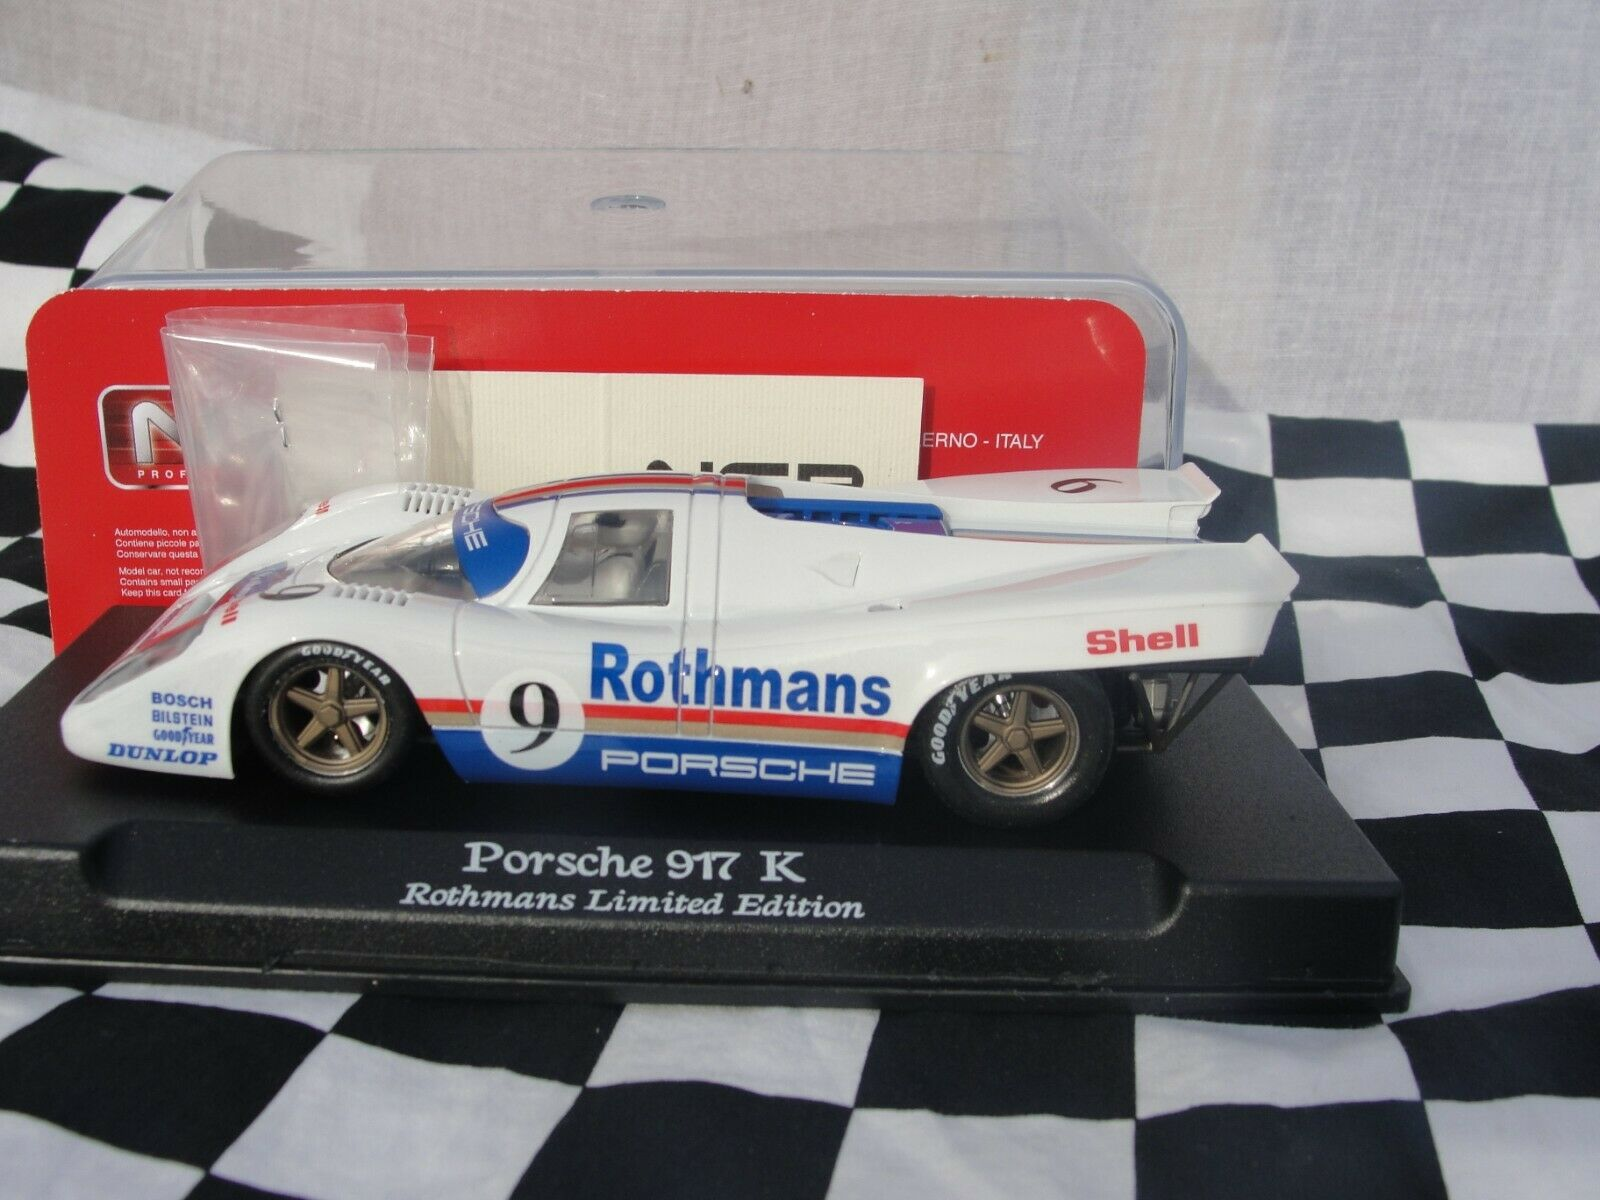 NSR PORSCHE 917K 'redHMANS LIMITED EDITION' SW 1 32 BNIB LATEST OUT